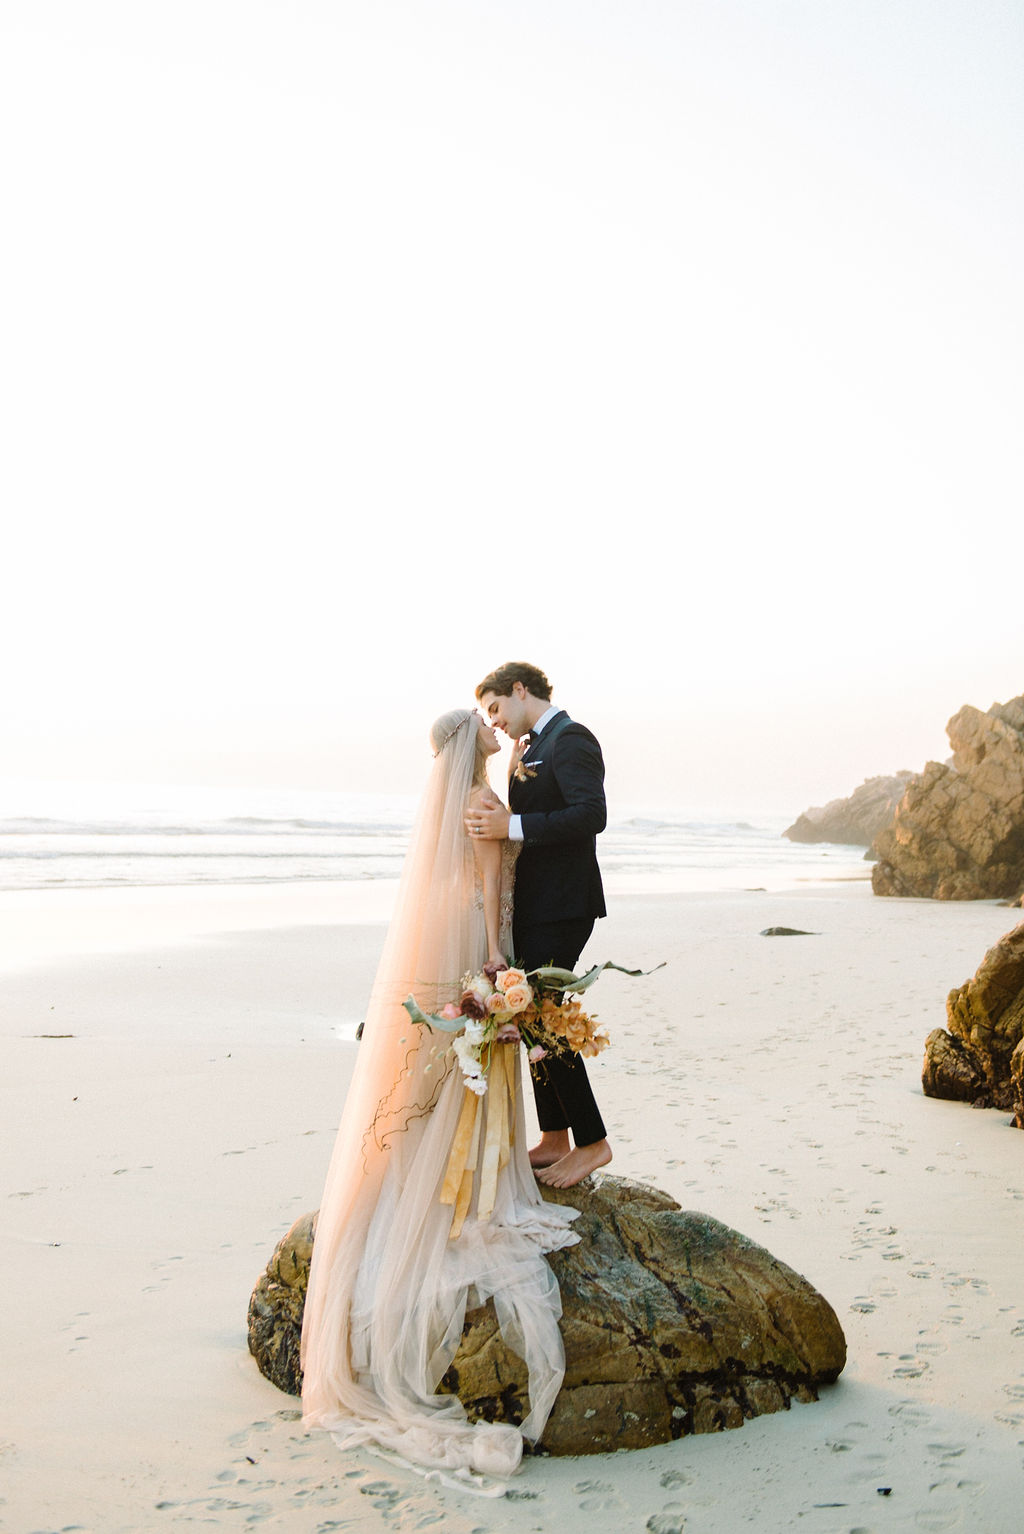 Ocean Wedding | Rust Wedding | Lizelle Goussard Photography | Joy Wed | Canadian Wedding Blog | Dubai Wedding | Dubai Photographer | Fine Art Wedding